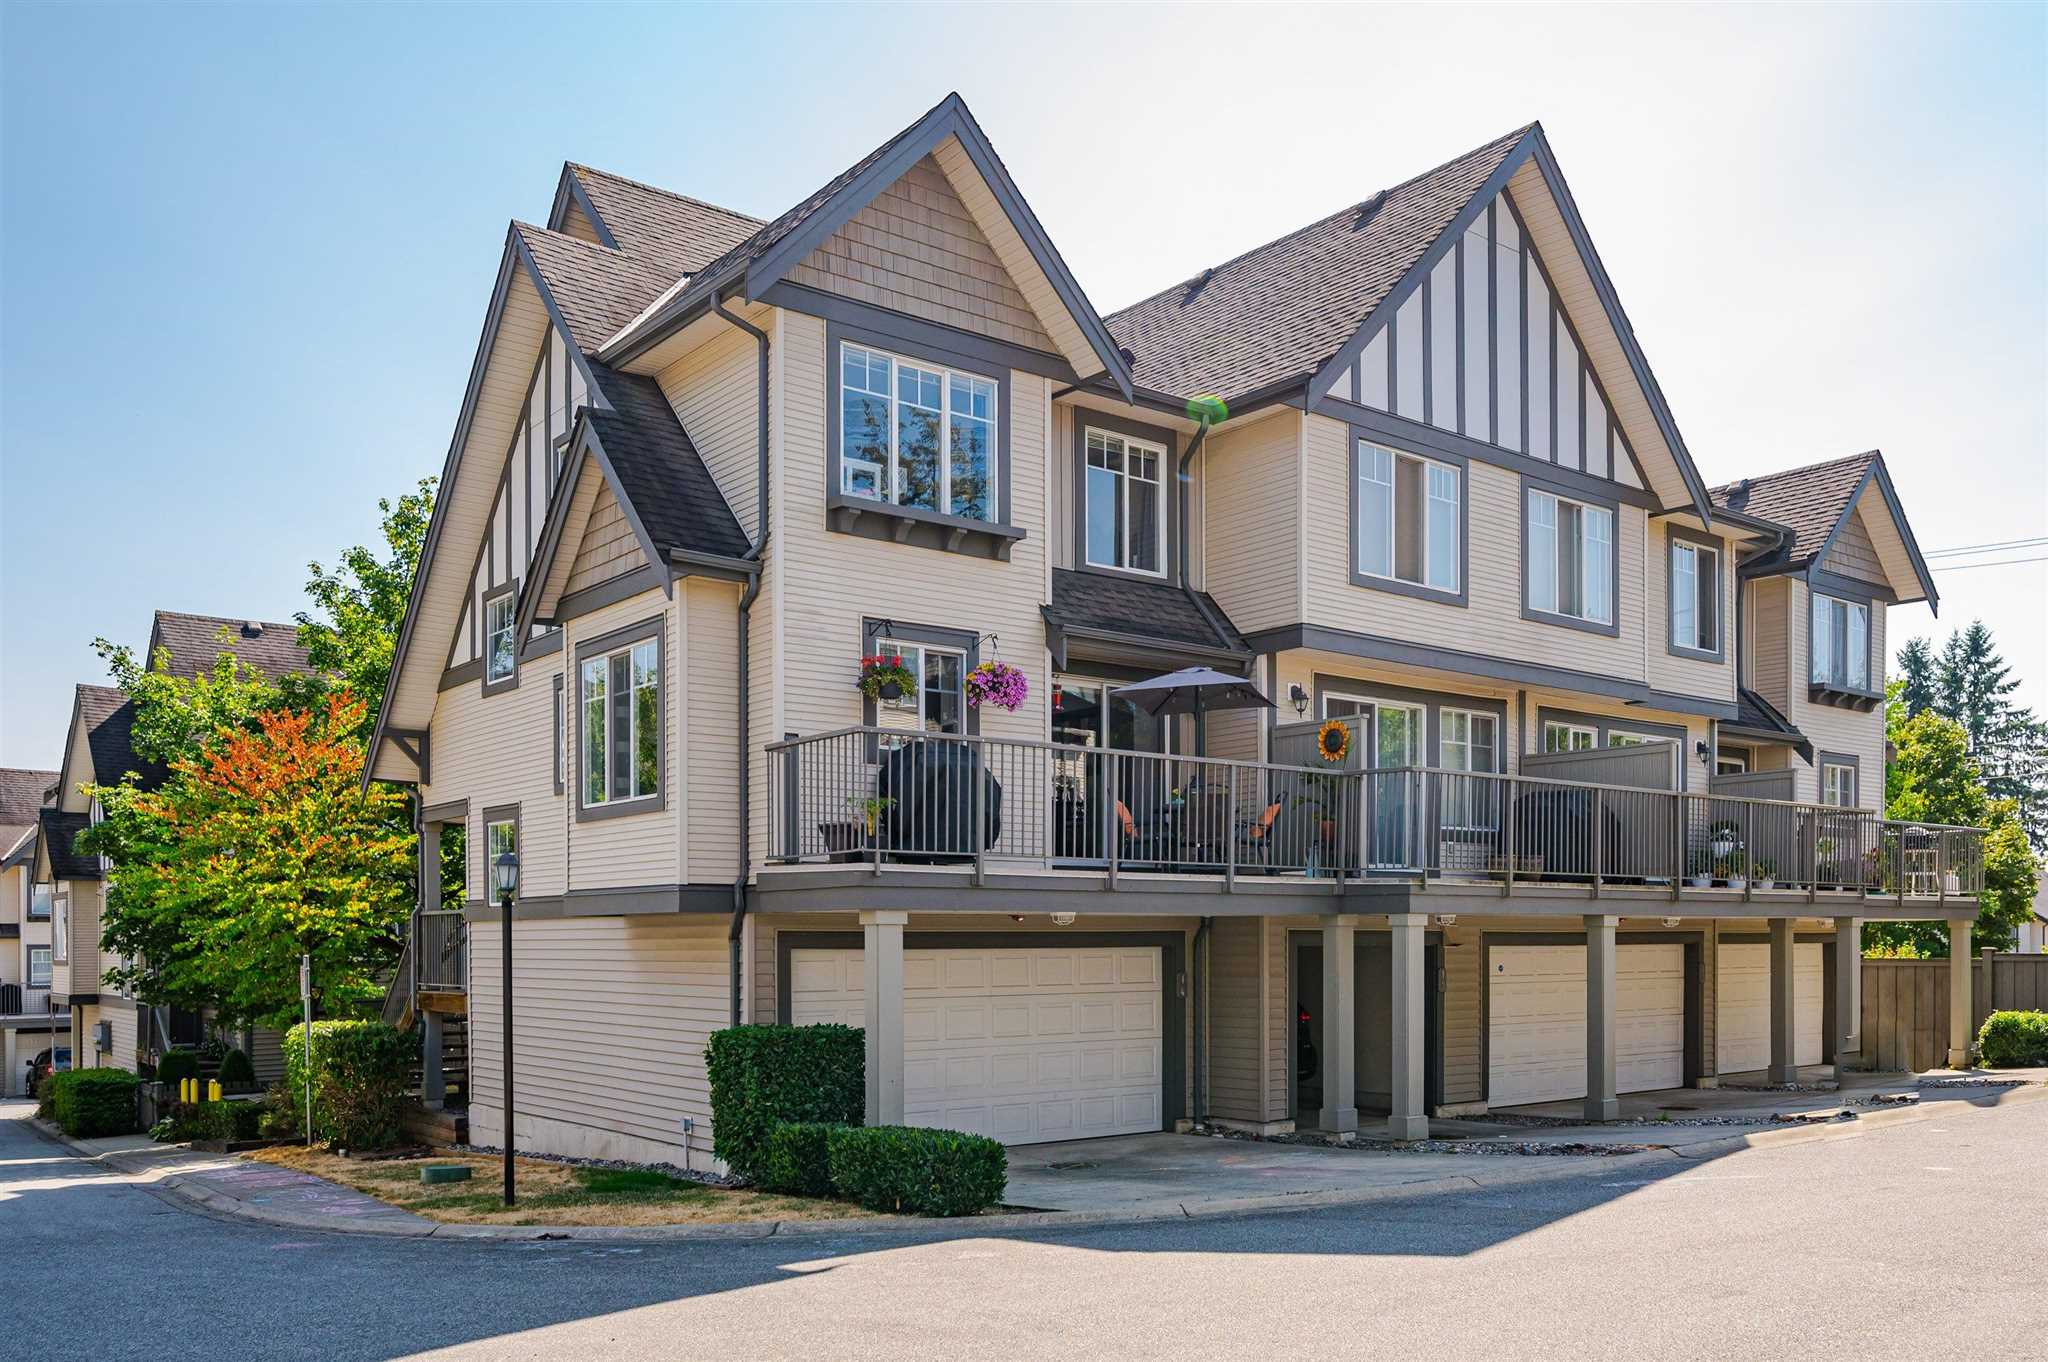 14 20038 70 AVENUE - Willoughby Heights Townhouse for sale, 4 Bedrooms (R2605281) - #1